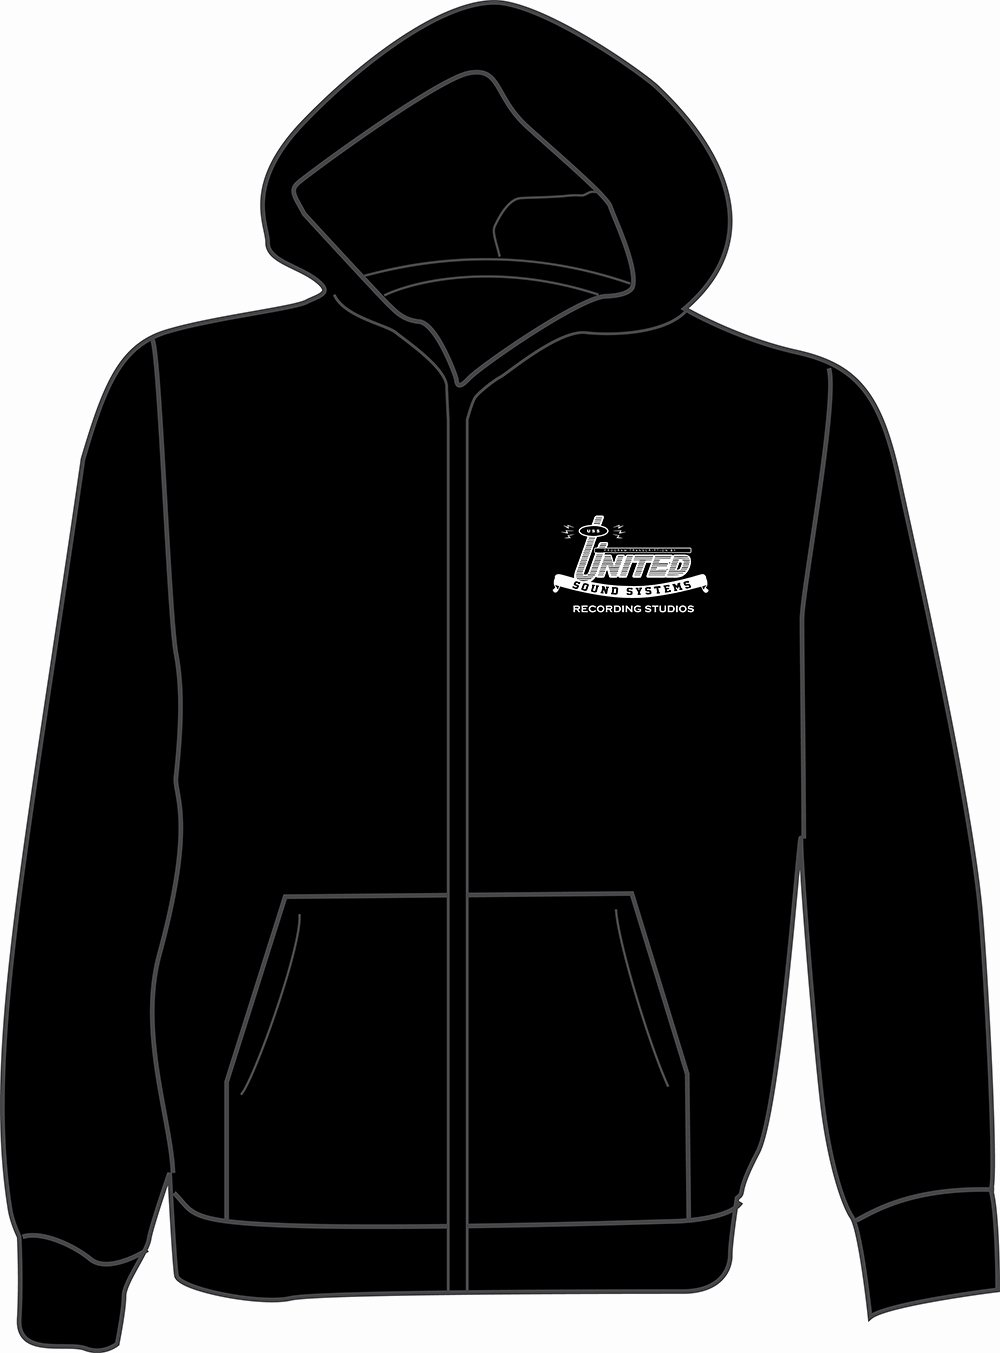 Hooded Sweatshirt Template Best Of Store Ussrs Detroit S Musical History